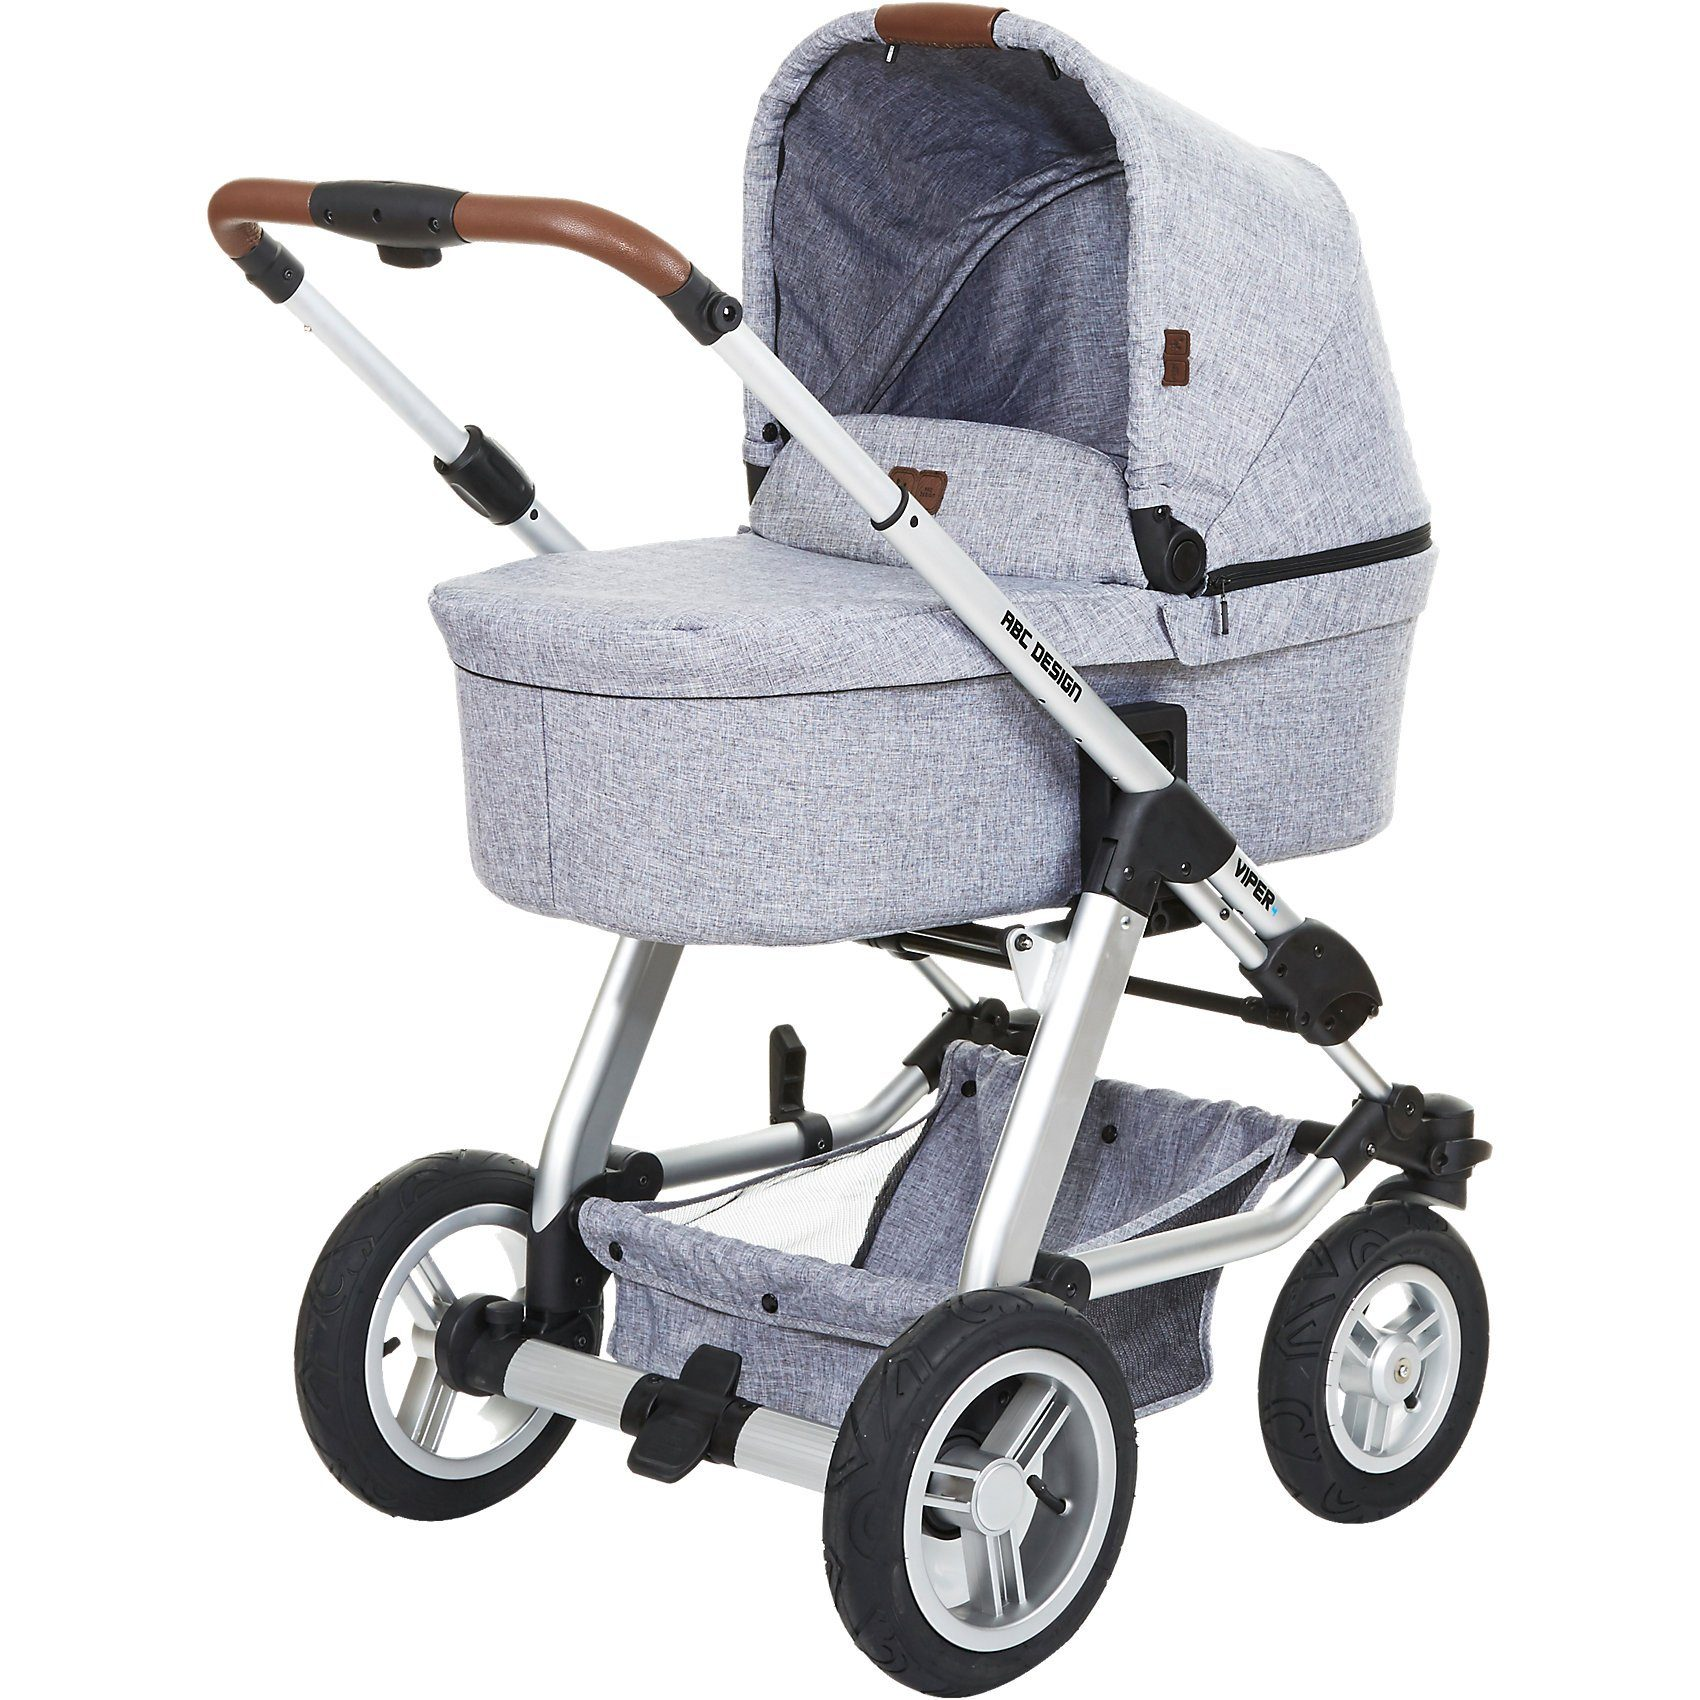 ABC Design Kombi Kinderwagen Viper 4, graphite grey, 2017